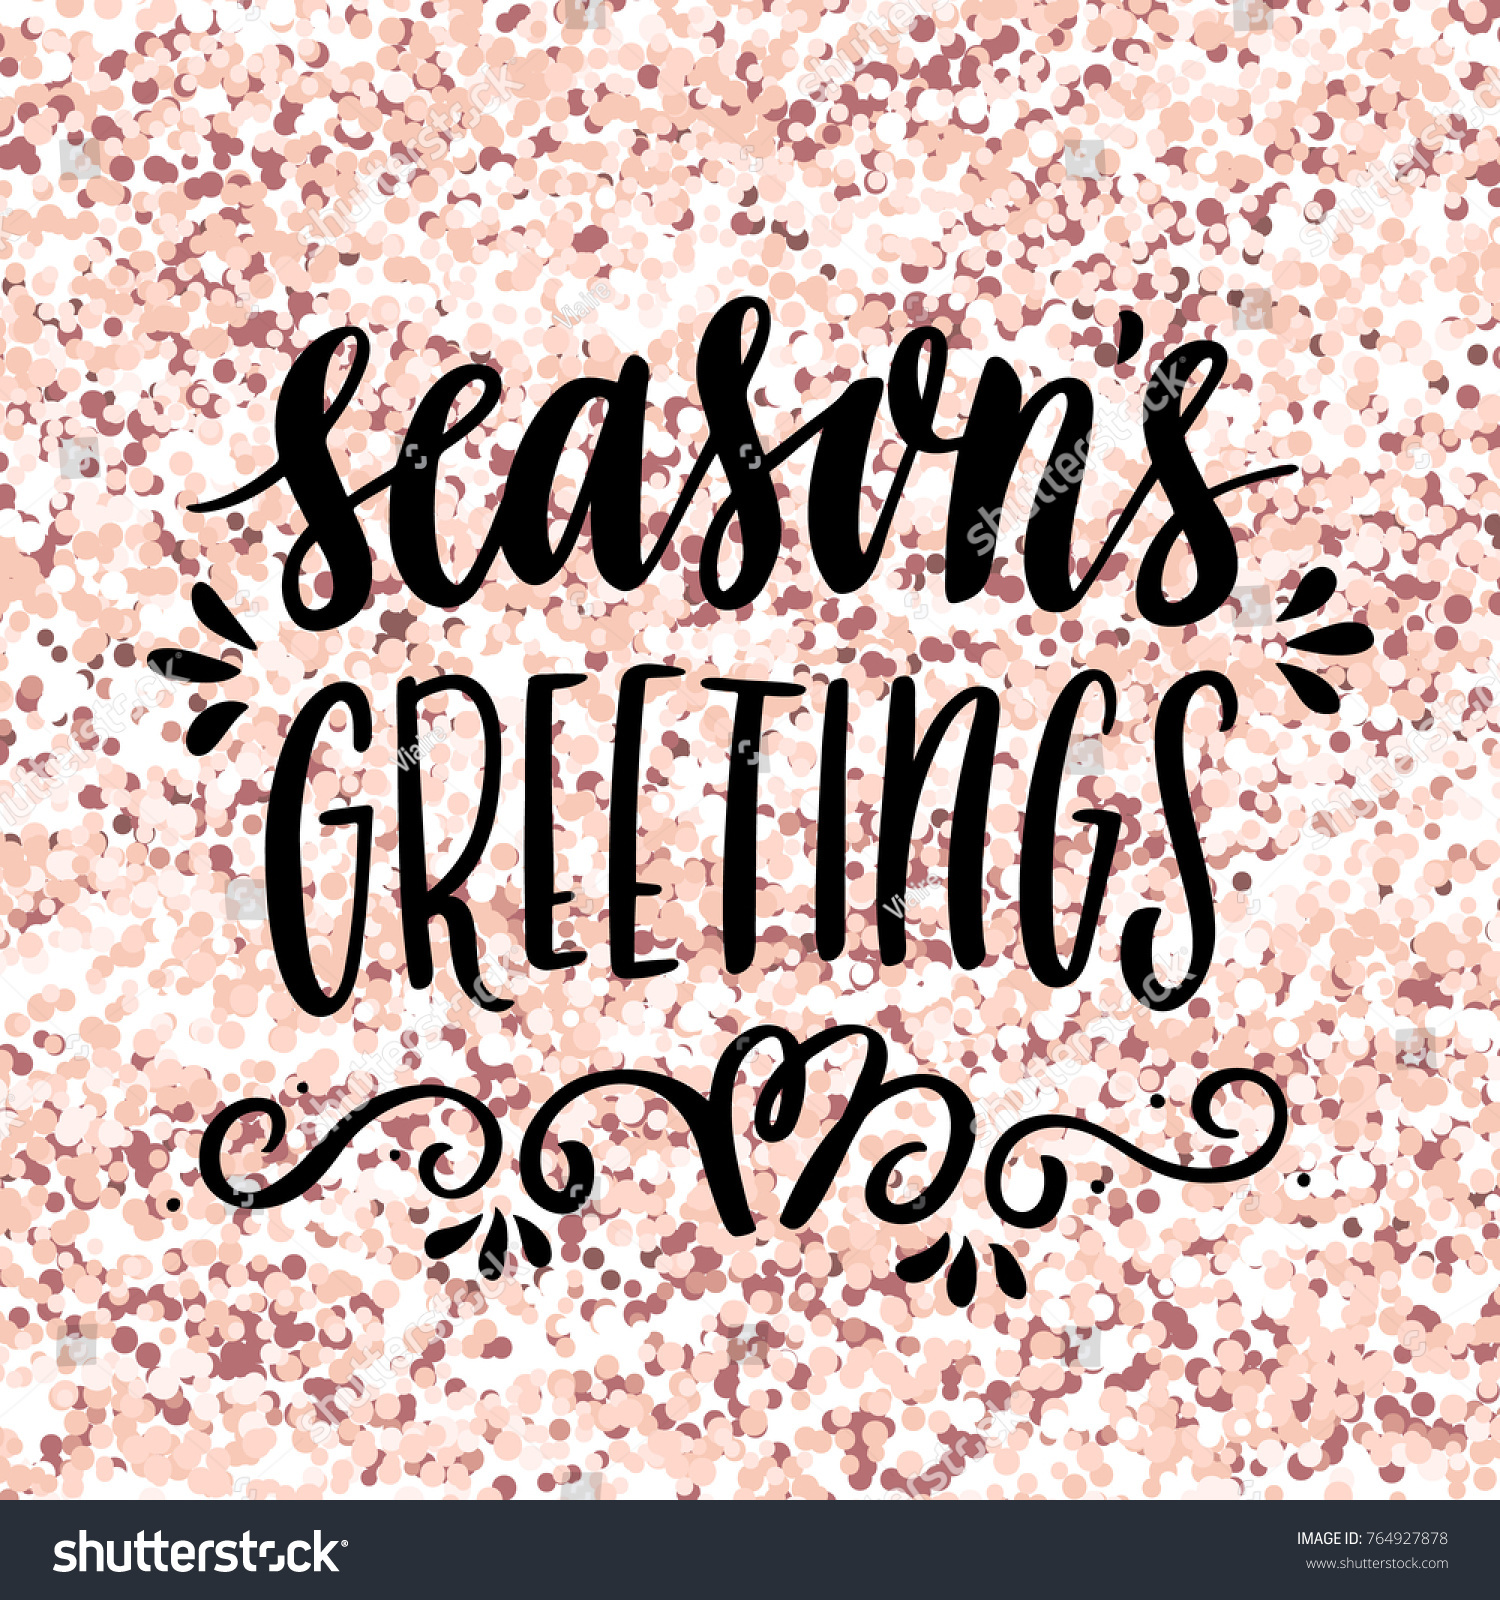 Handdrawing quote seasons greetings on pink stock vector 764927878 the hand drawing quote seasons greetings on a pink gold glitter background kristyandbryce Image collections